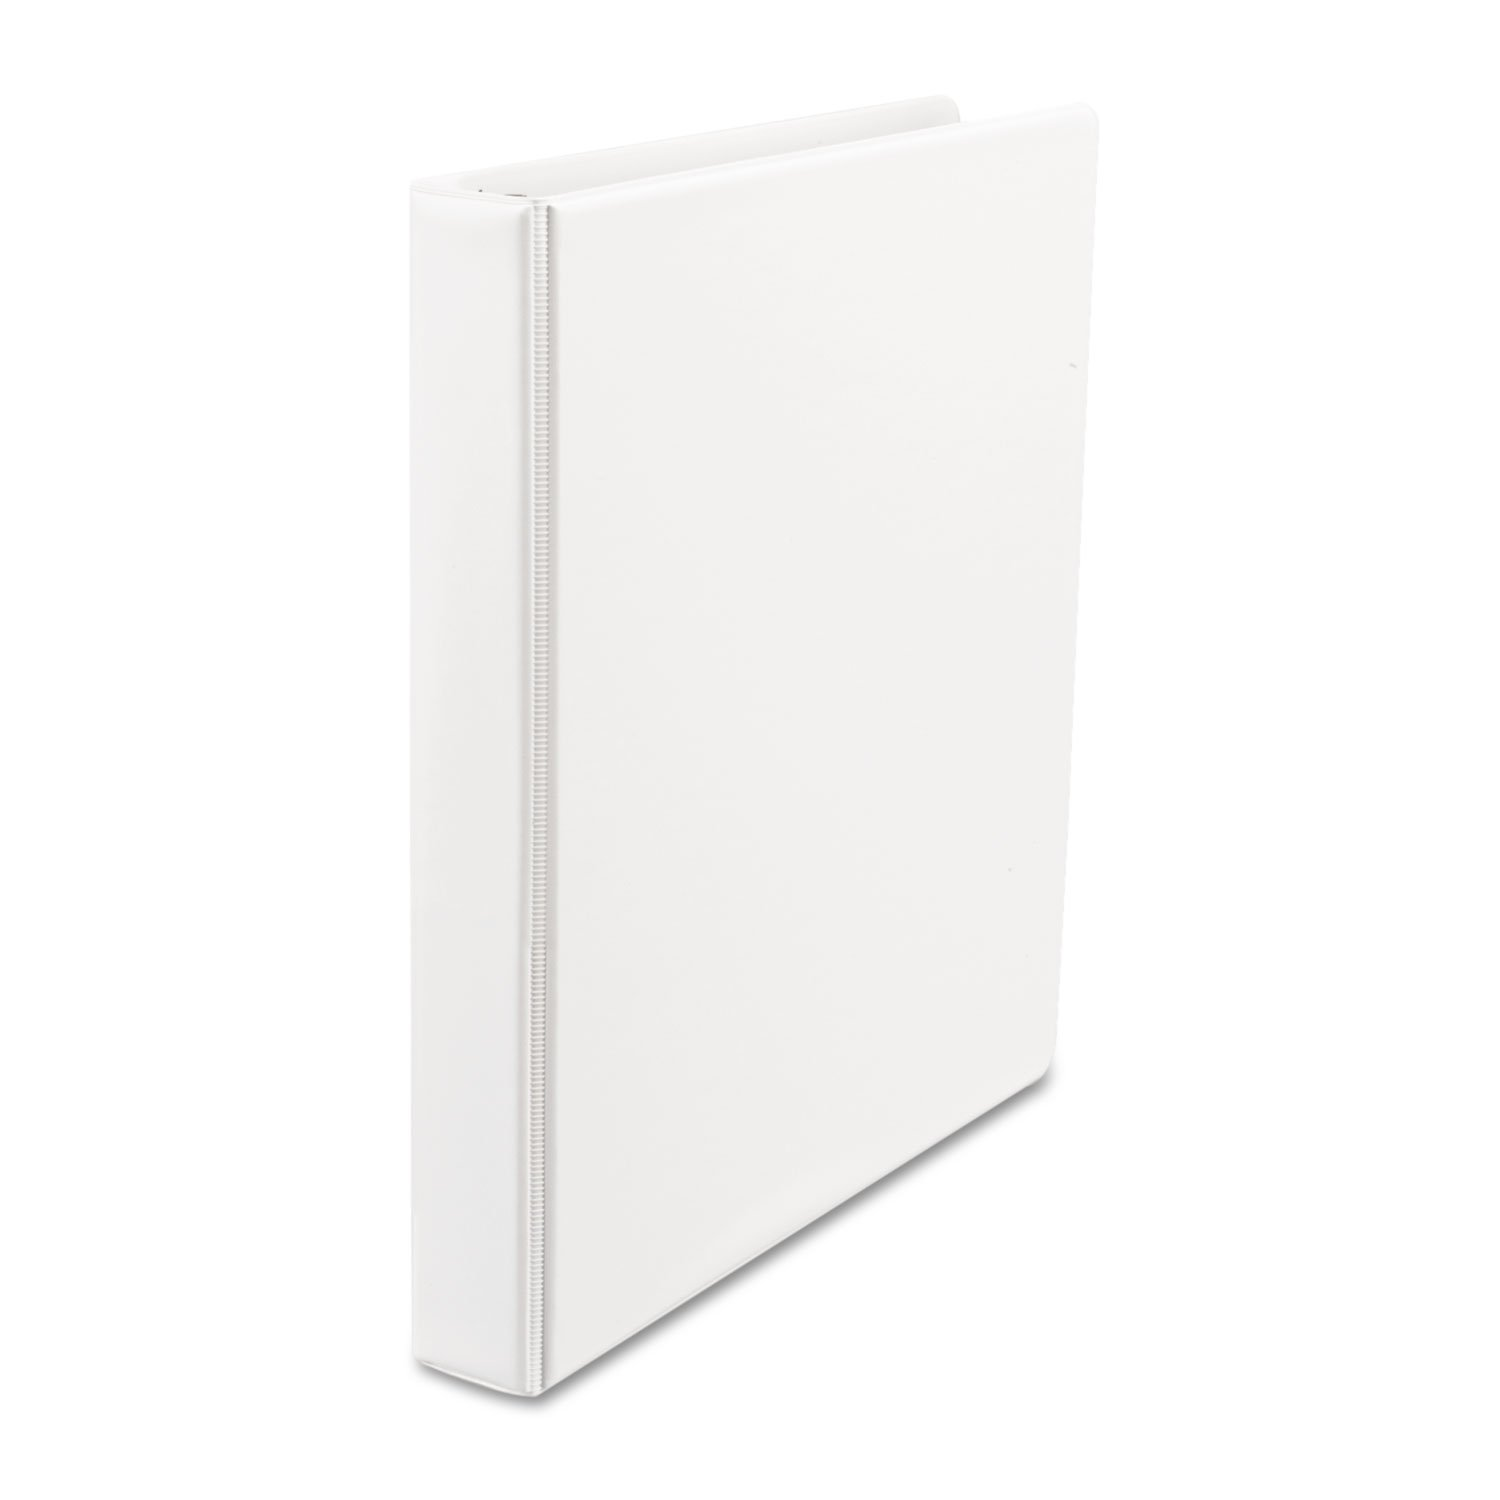 minoristas en línea Suede Finish Vinyl Round Ring Binder, 1 Capacity, White, White, White, 12/Carton, Sold as 1 Carton  diseño único